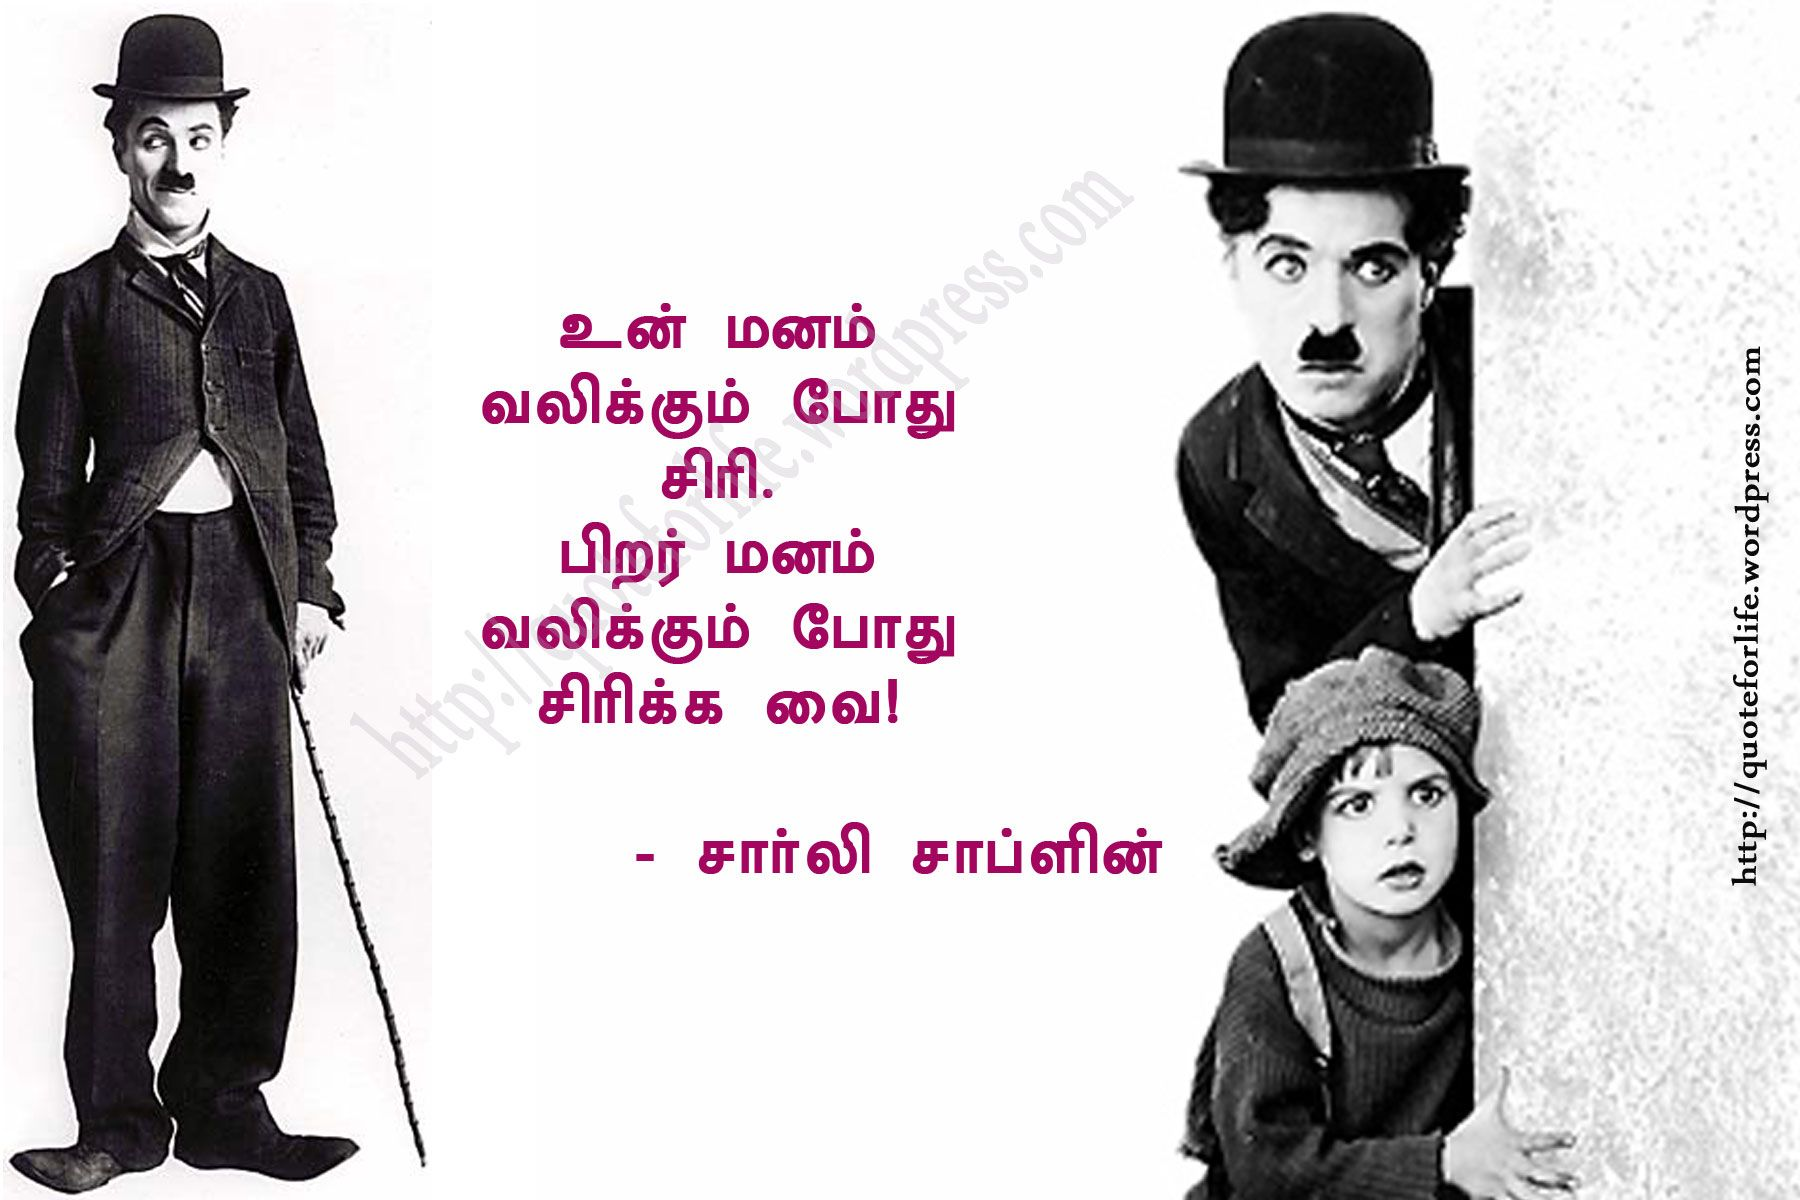 Pin by shafiya sweetz on qoutes and inspirations | Tamil